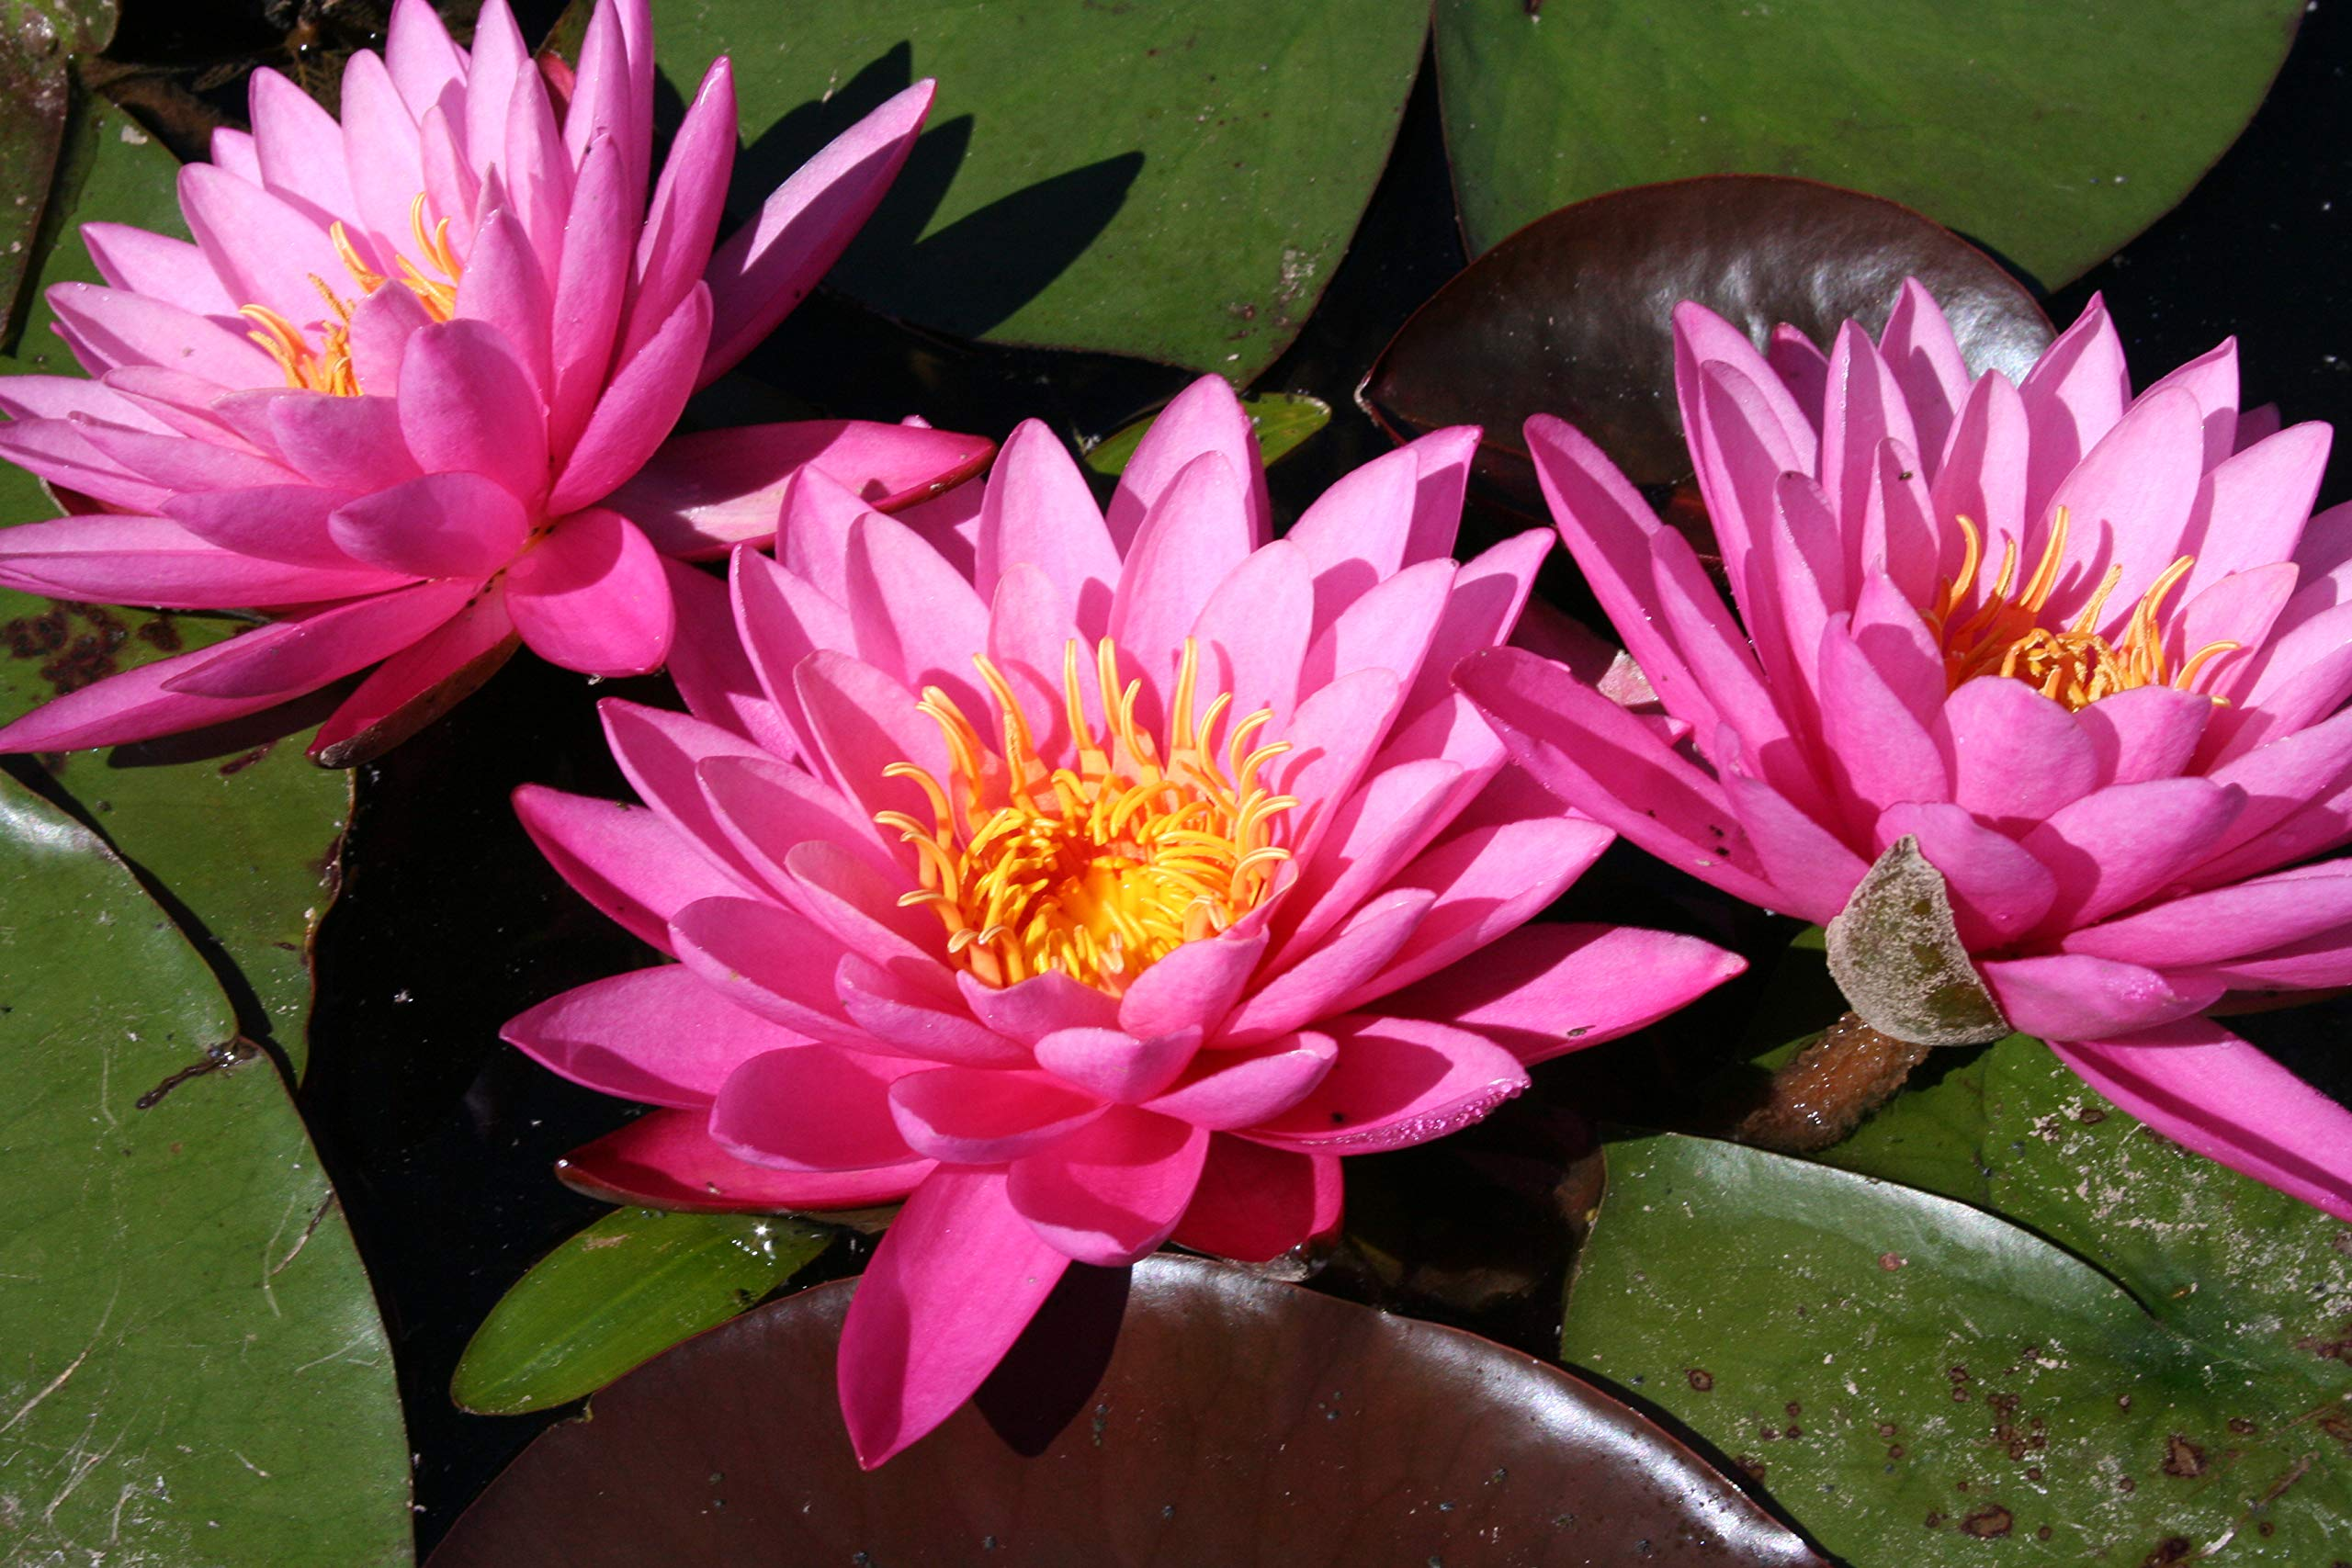 Tropical Water Lily Bundle - 3 Pre-Grown Rhizomes in White, Red, and Purple by AquaLeaf Aquatics (Image #3)